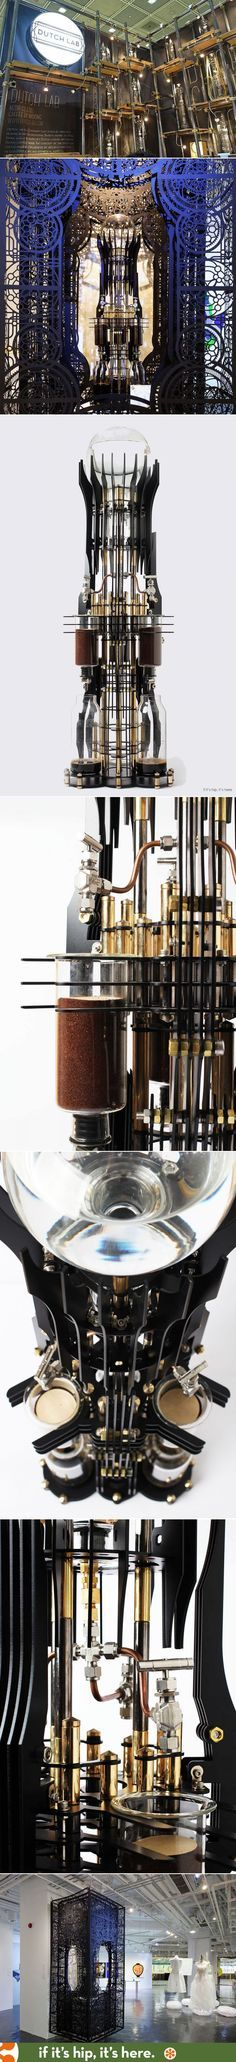 The AKMA, the newest Steampunk-inspired 3000ml cold brew drip coffee machine by Dutch Lab. Displayed in suspended metal laser cut steampunk cage.